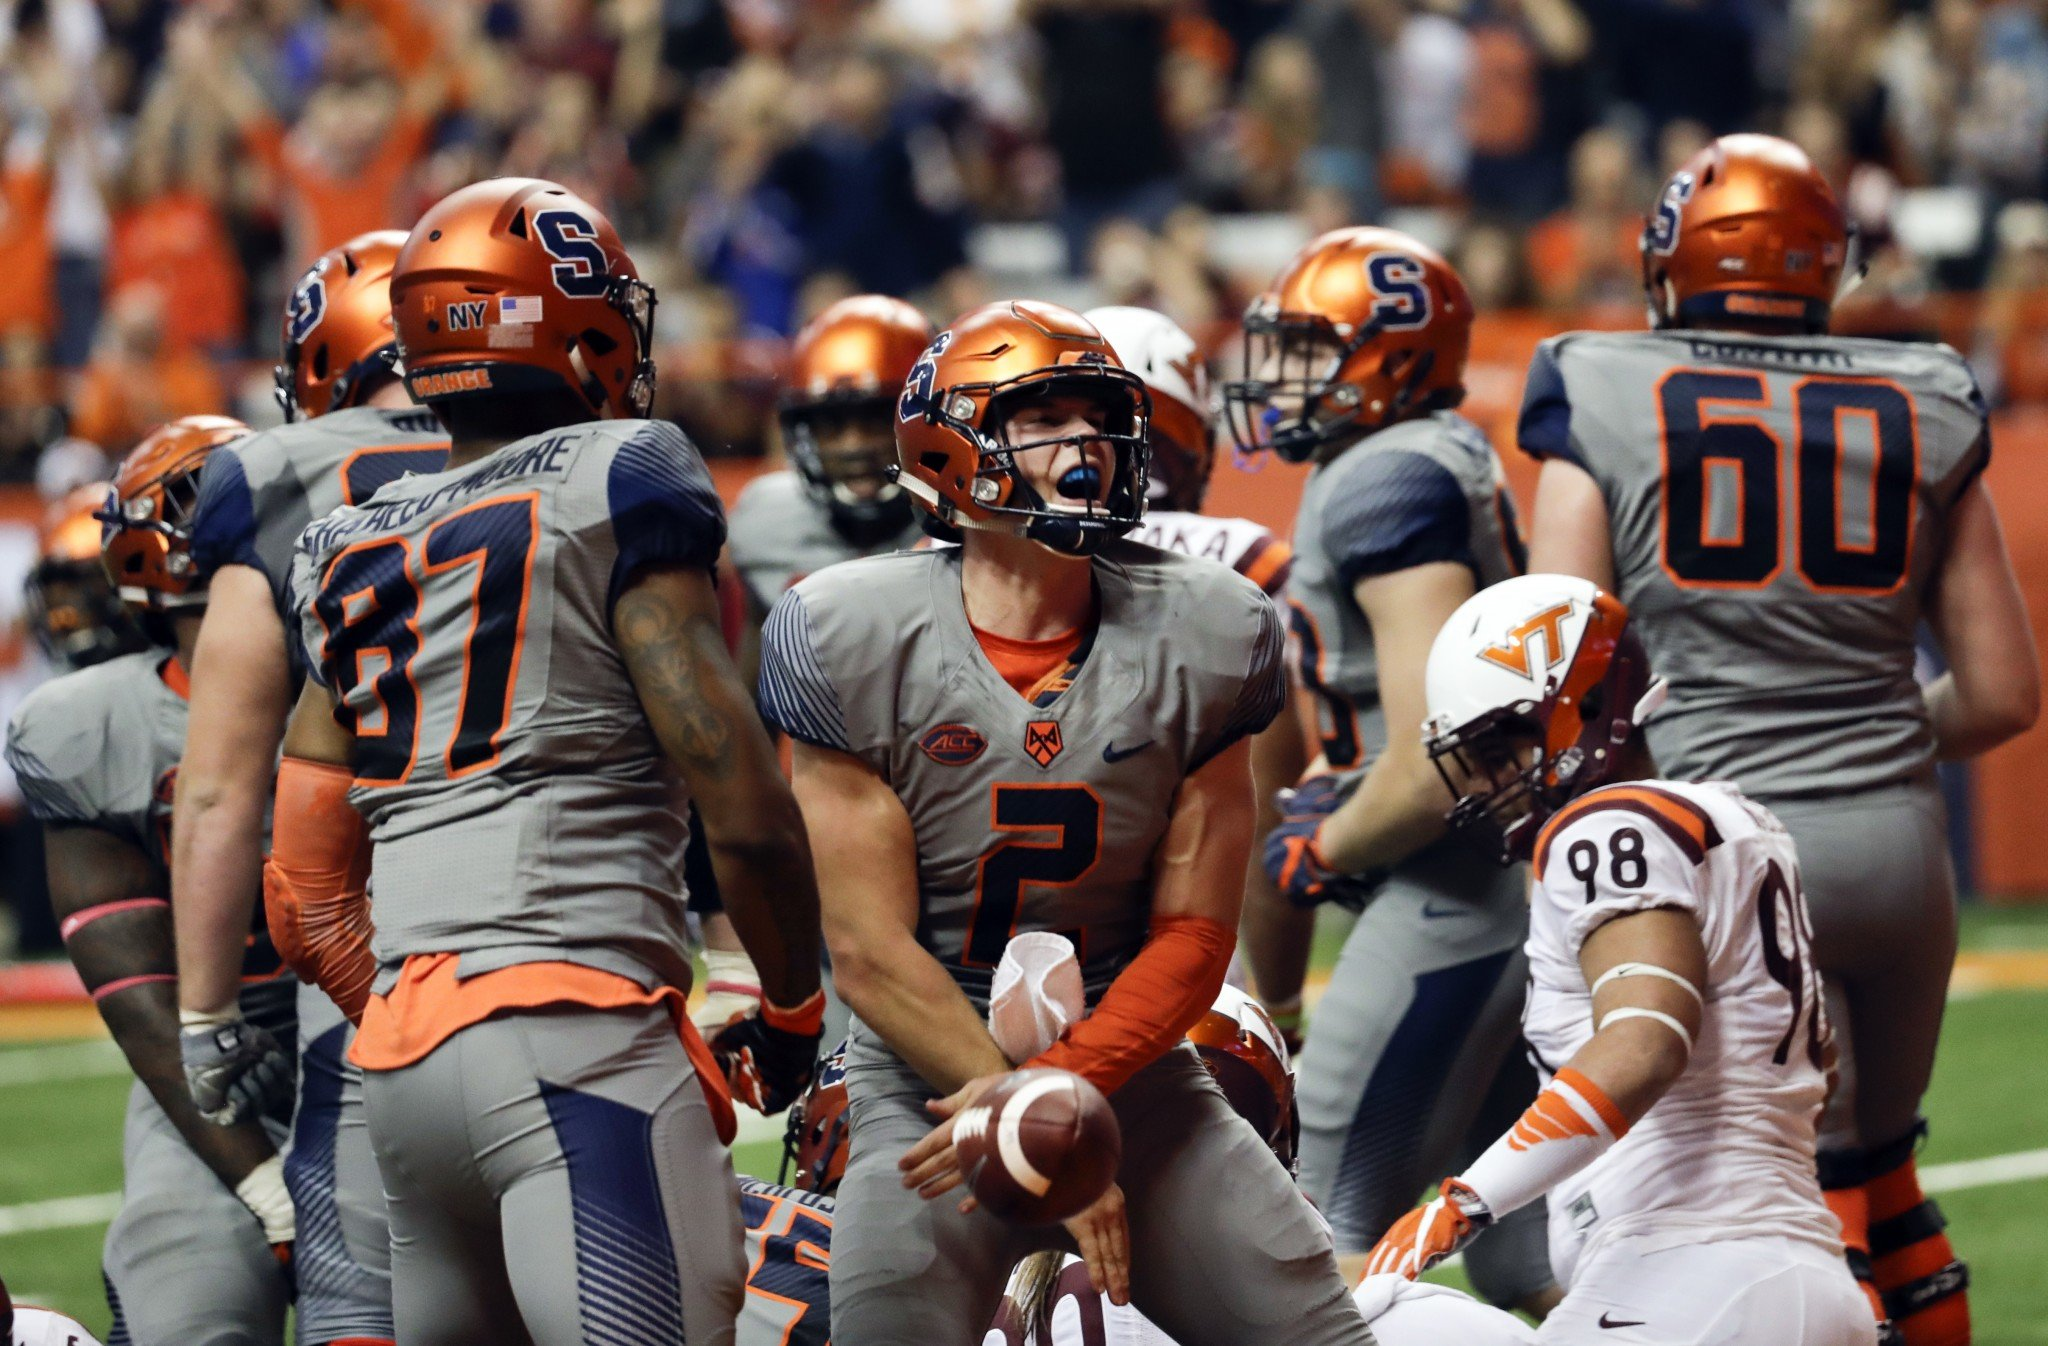 Virginia Tech Blows Chance To Grab Hold Of Acc Coastal